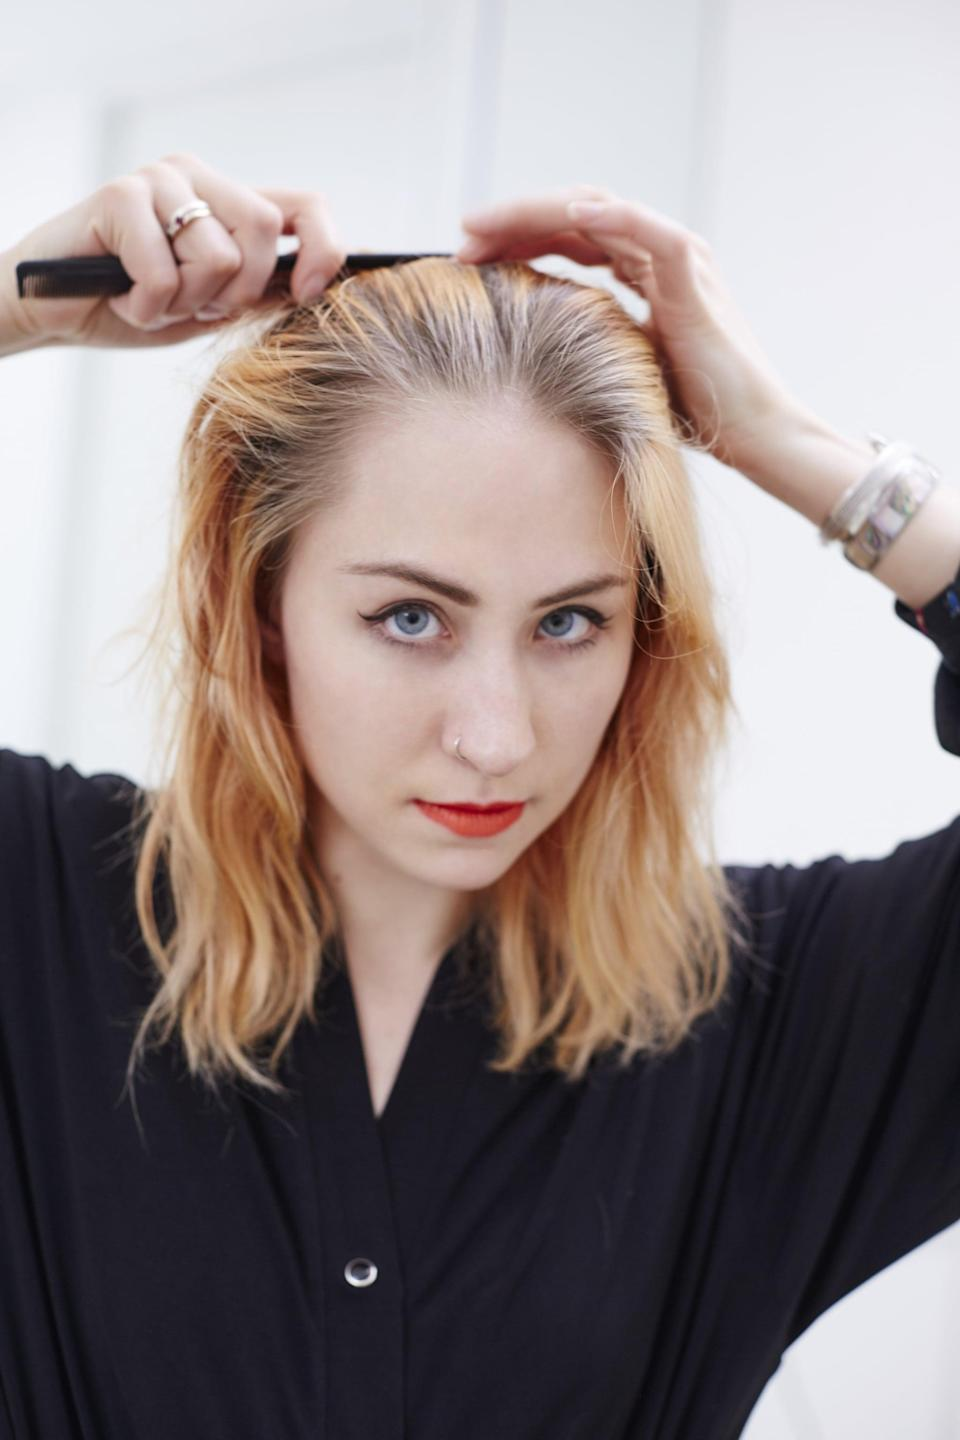 <p>Part your hair however you usually do - middle or side - and begin to section it off. The sections should be about an inch to an inch-and-a-half big.</p>